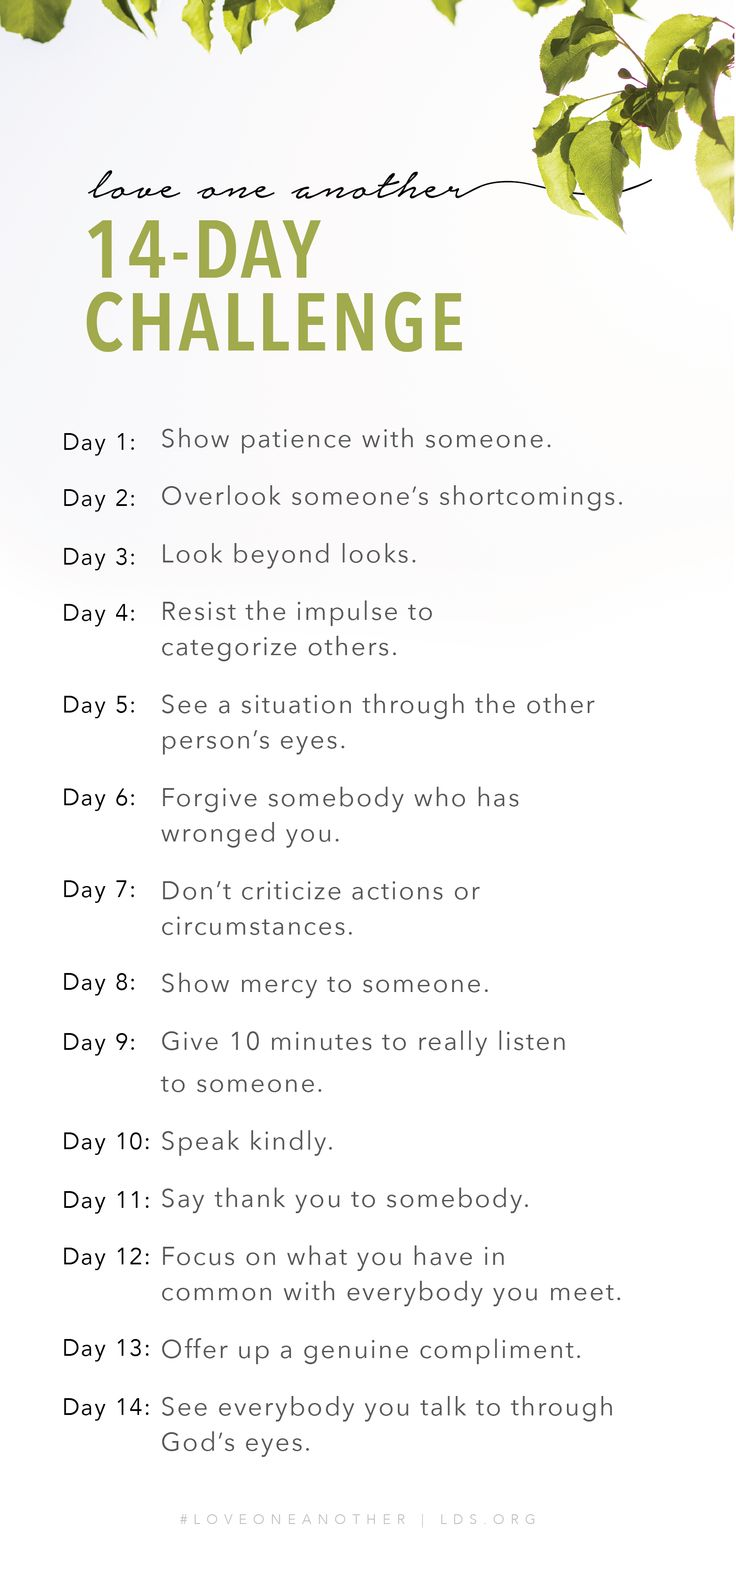 14 Day Challenge to Love One Another #LDS